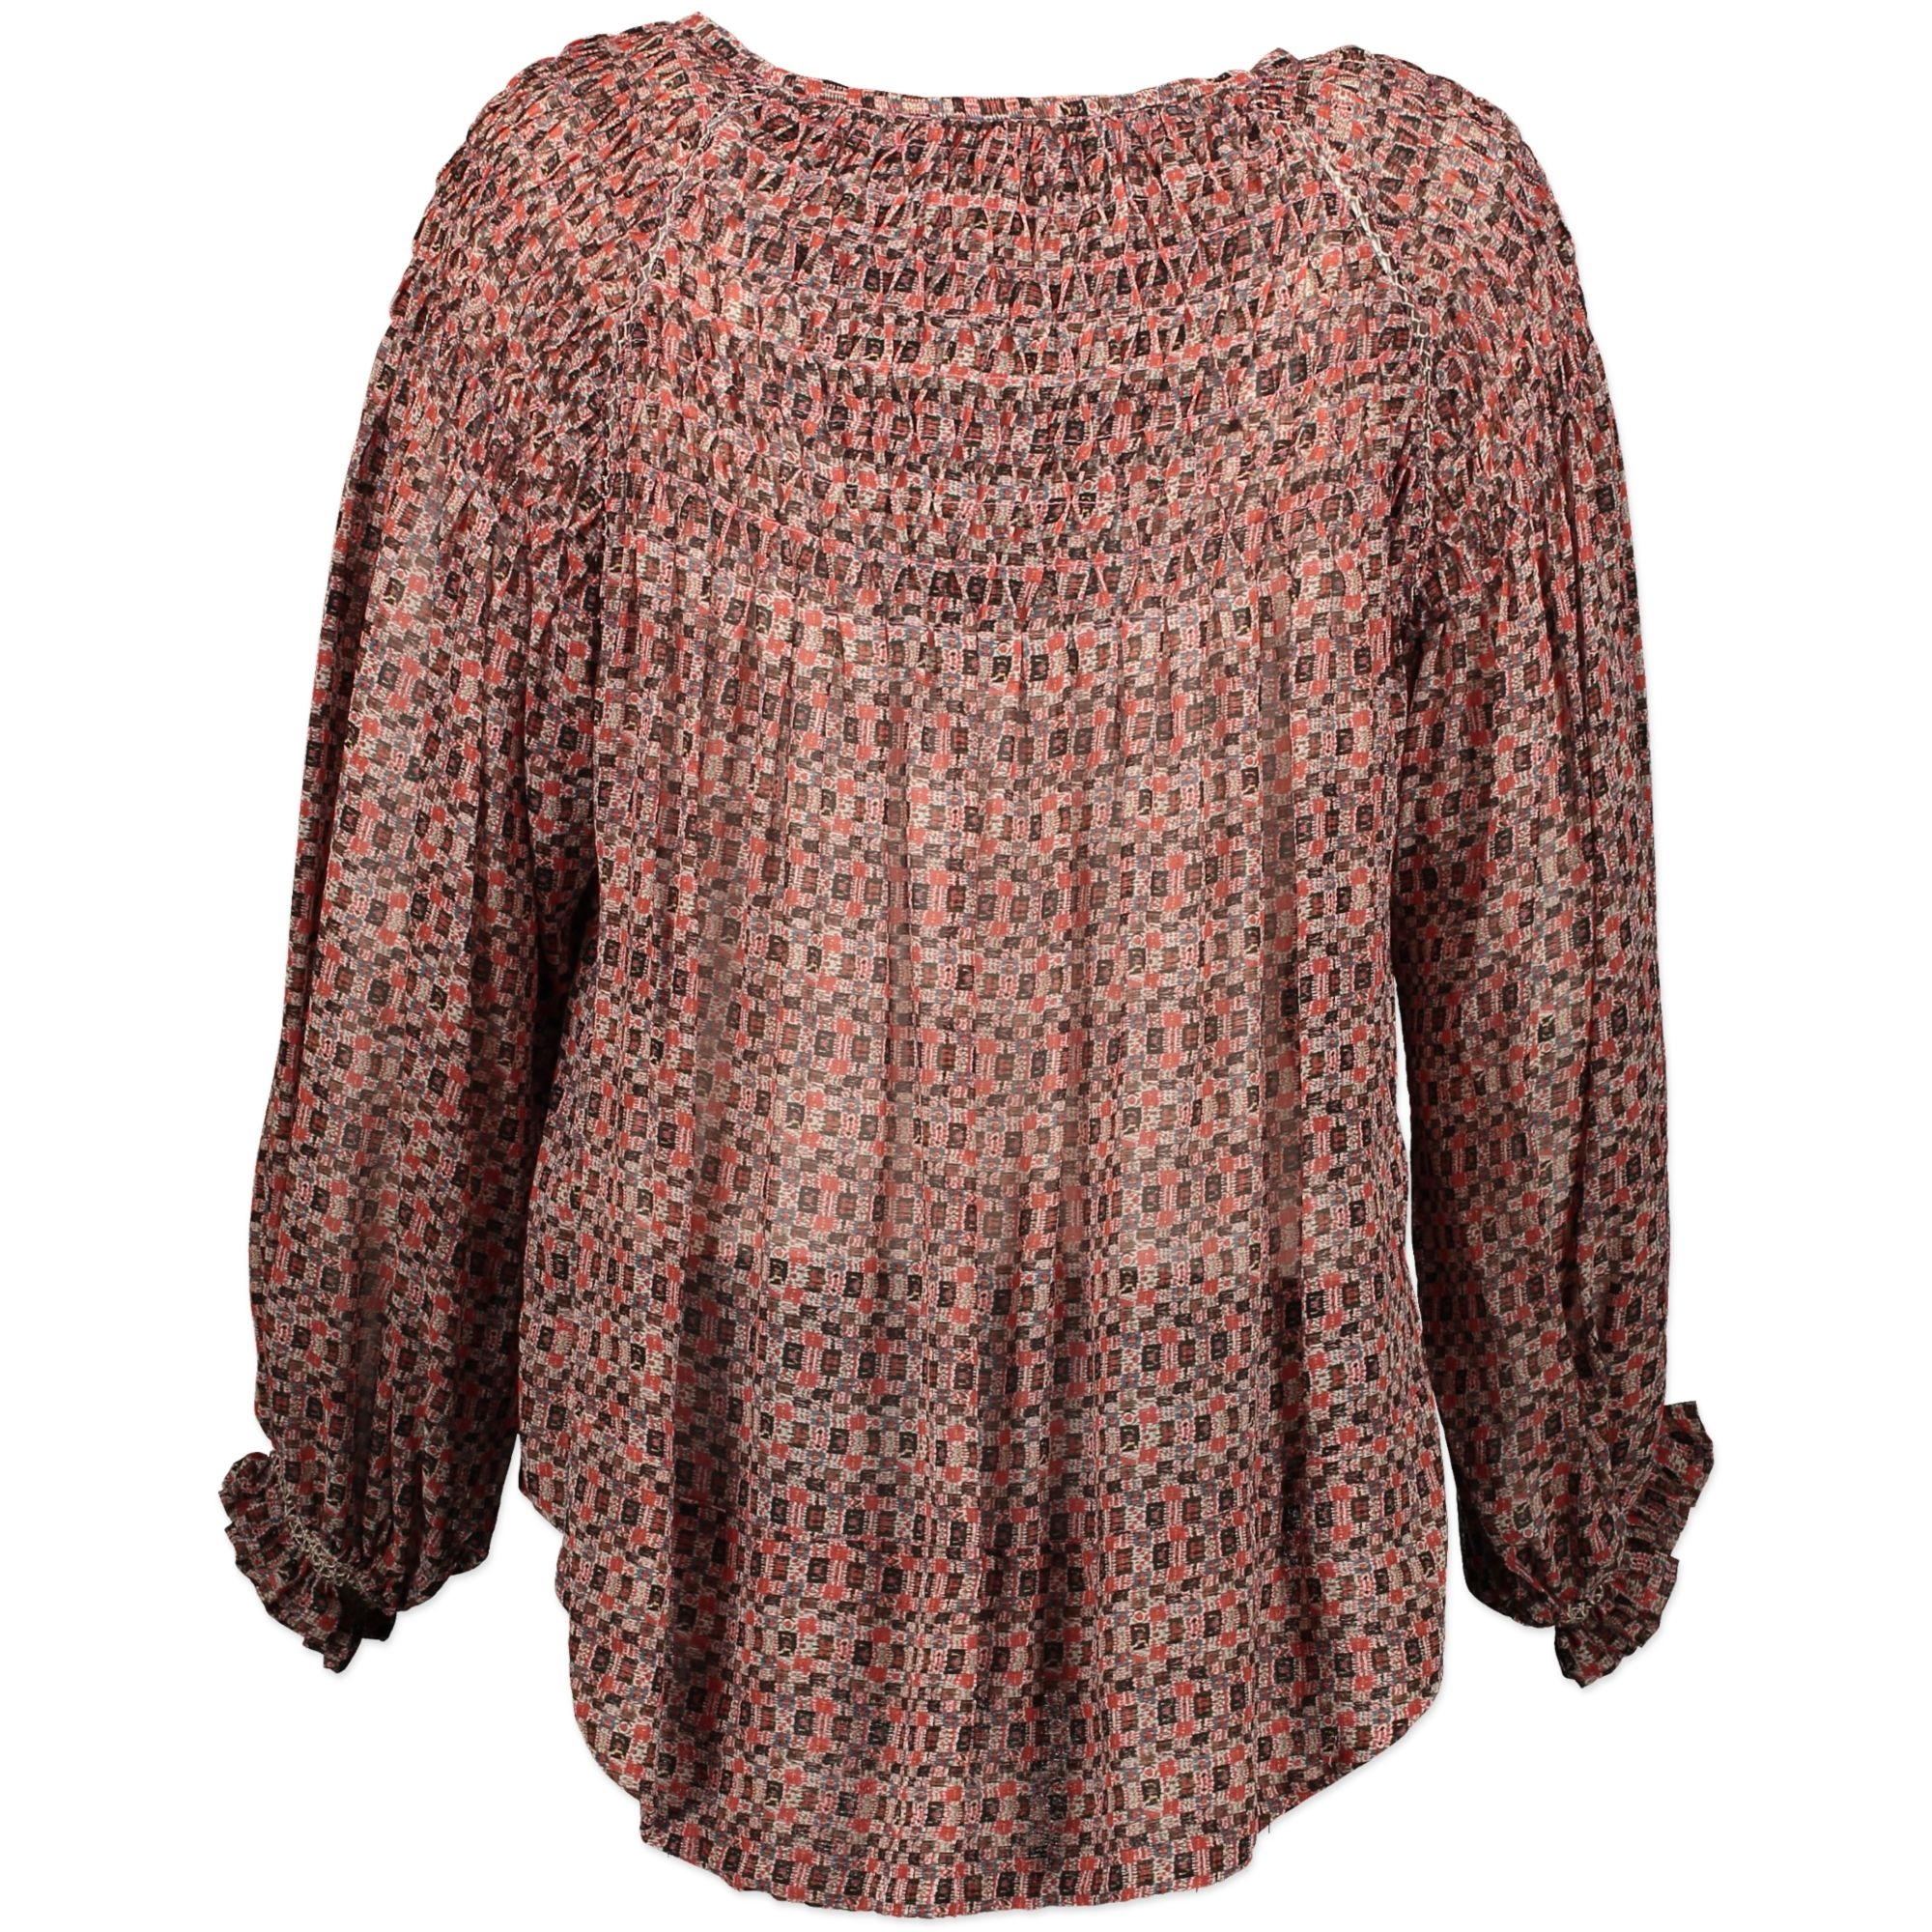 secondhand Isabel Marant clothing at Labellov. Safe online shopping